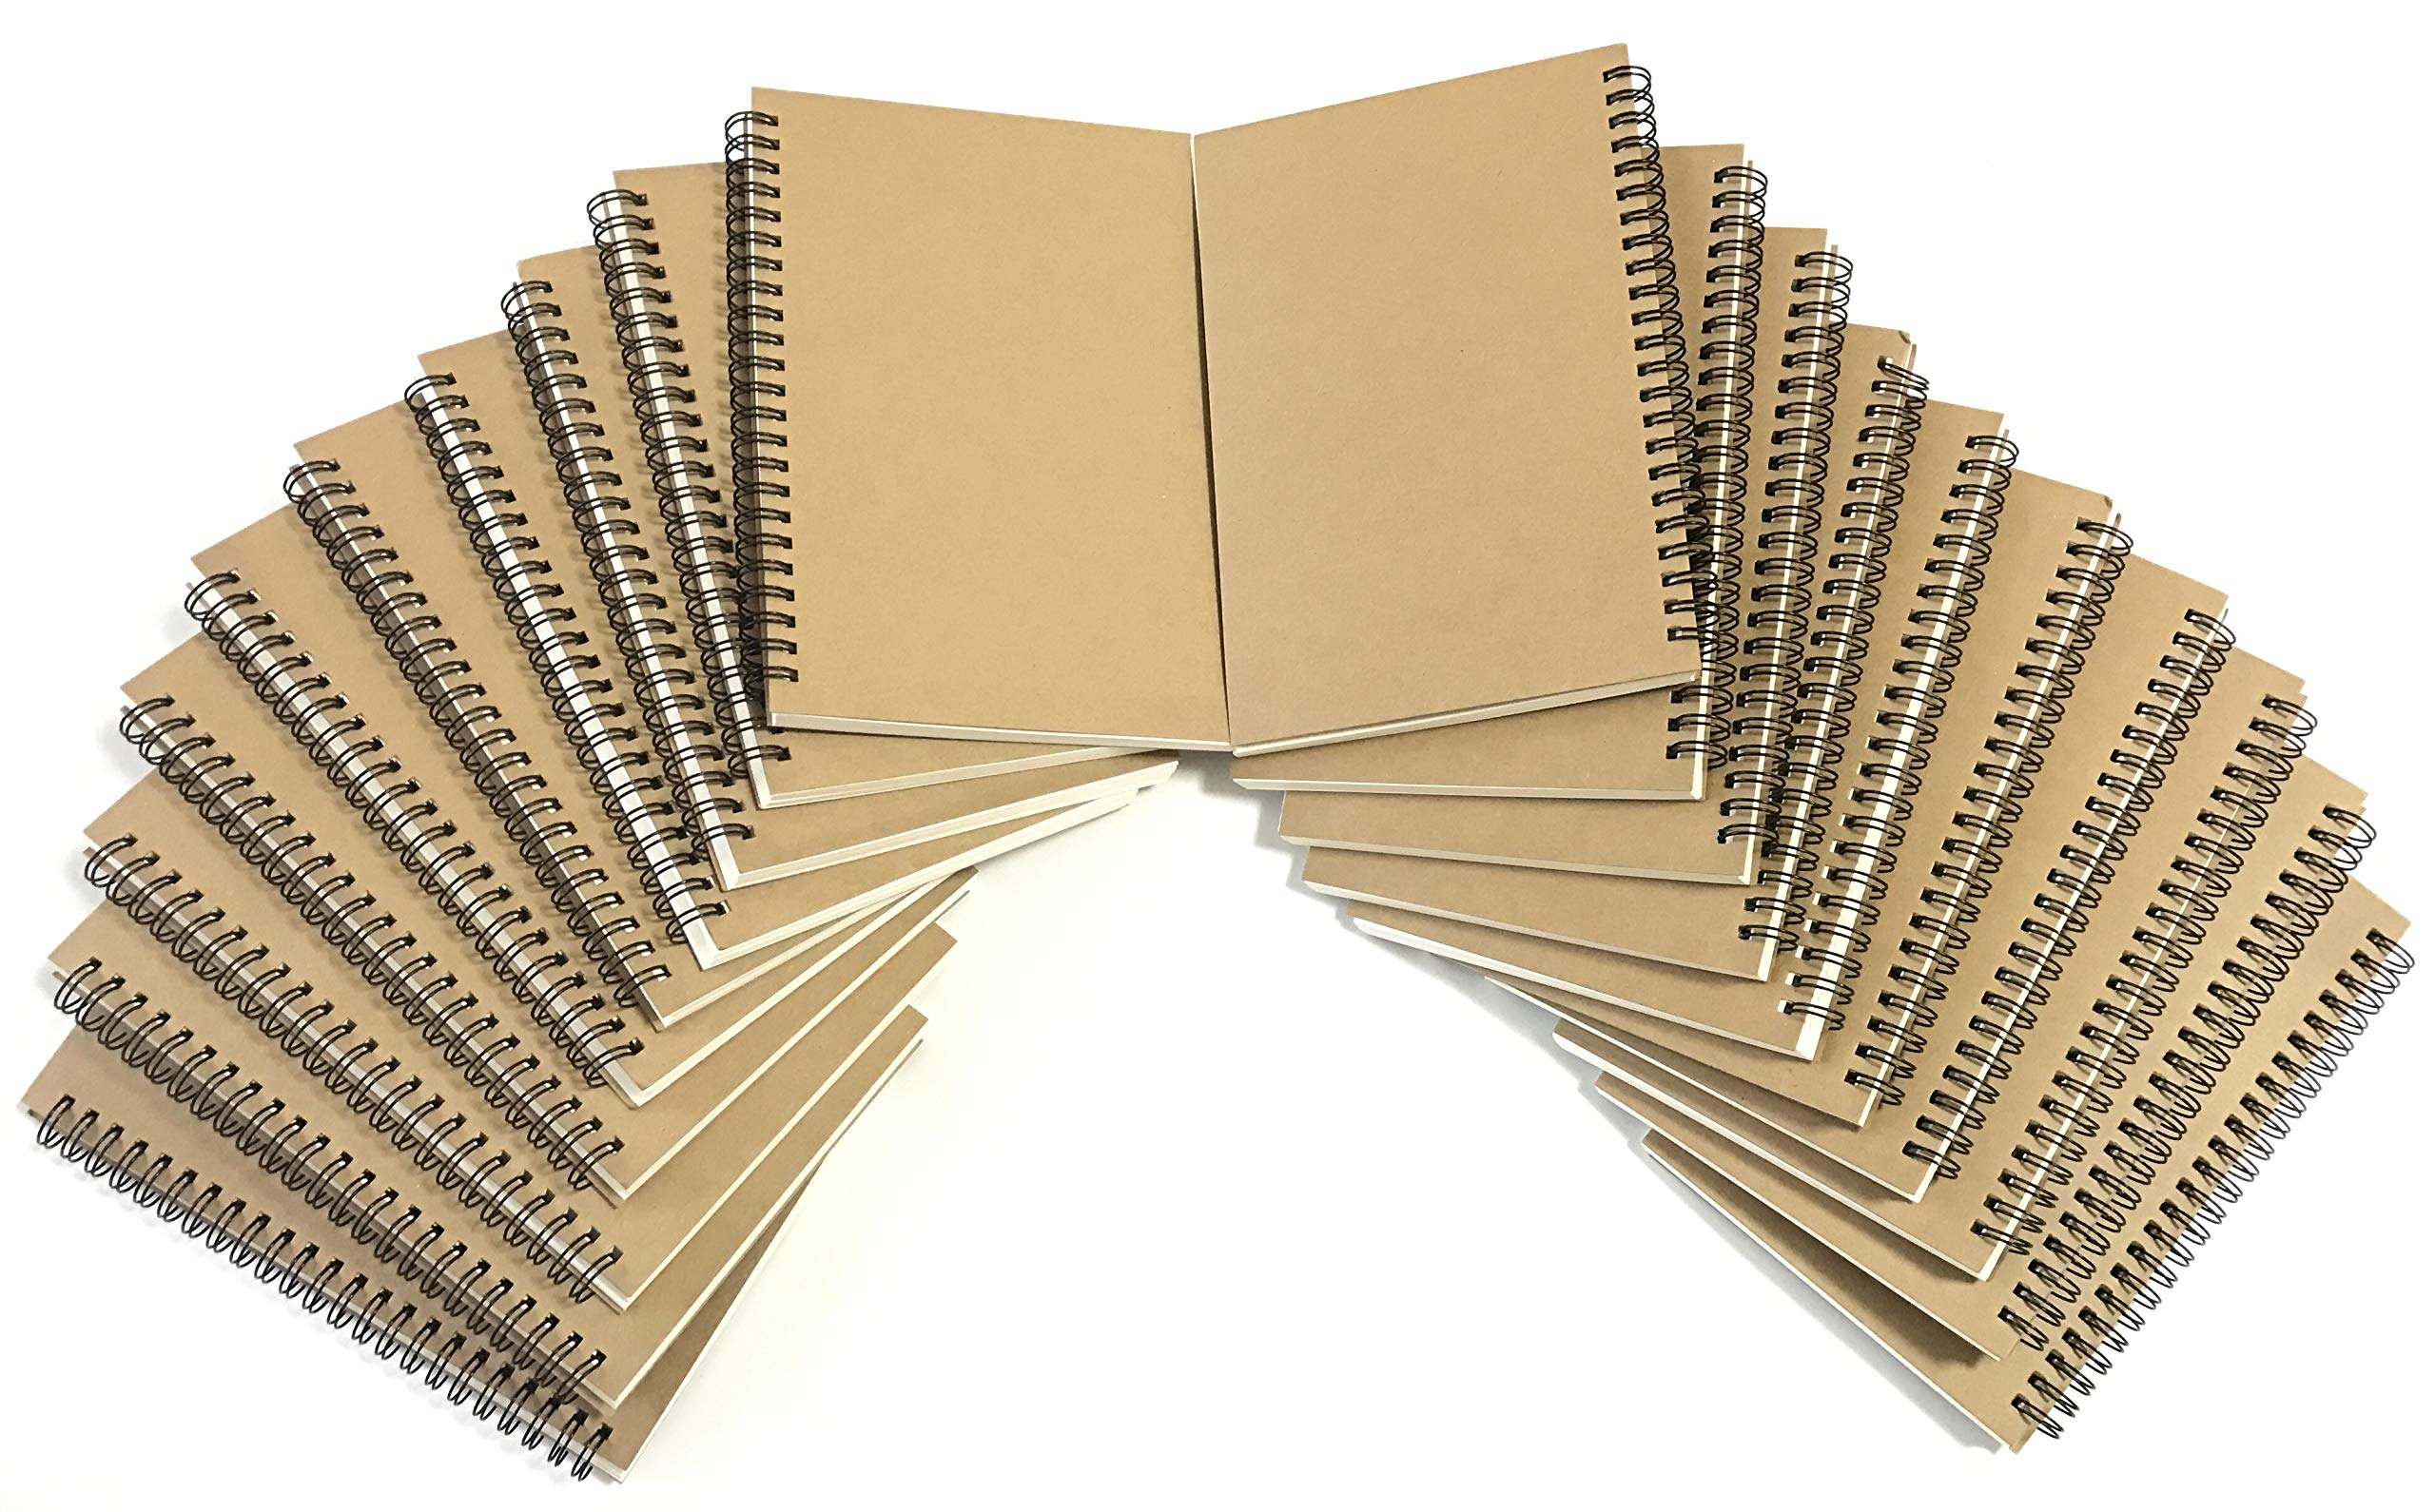 VEEPPO A5 Wirebound Notebooks Bulk Journals Spiral Steno Pads Blank/Lined Kraft Brown Cardboard Cover Thick Cream Writing Pad Sketchbook Scrapbook Album (Blank White-Pack of 20)